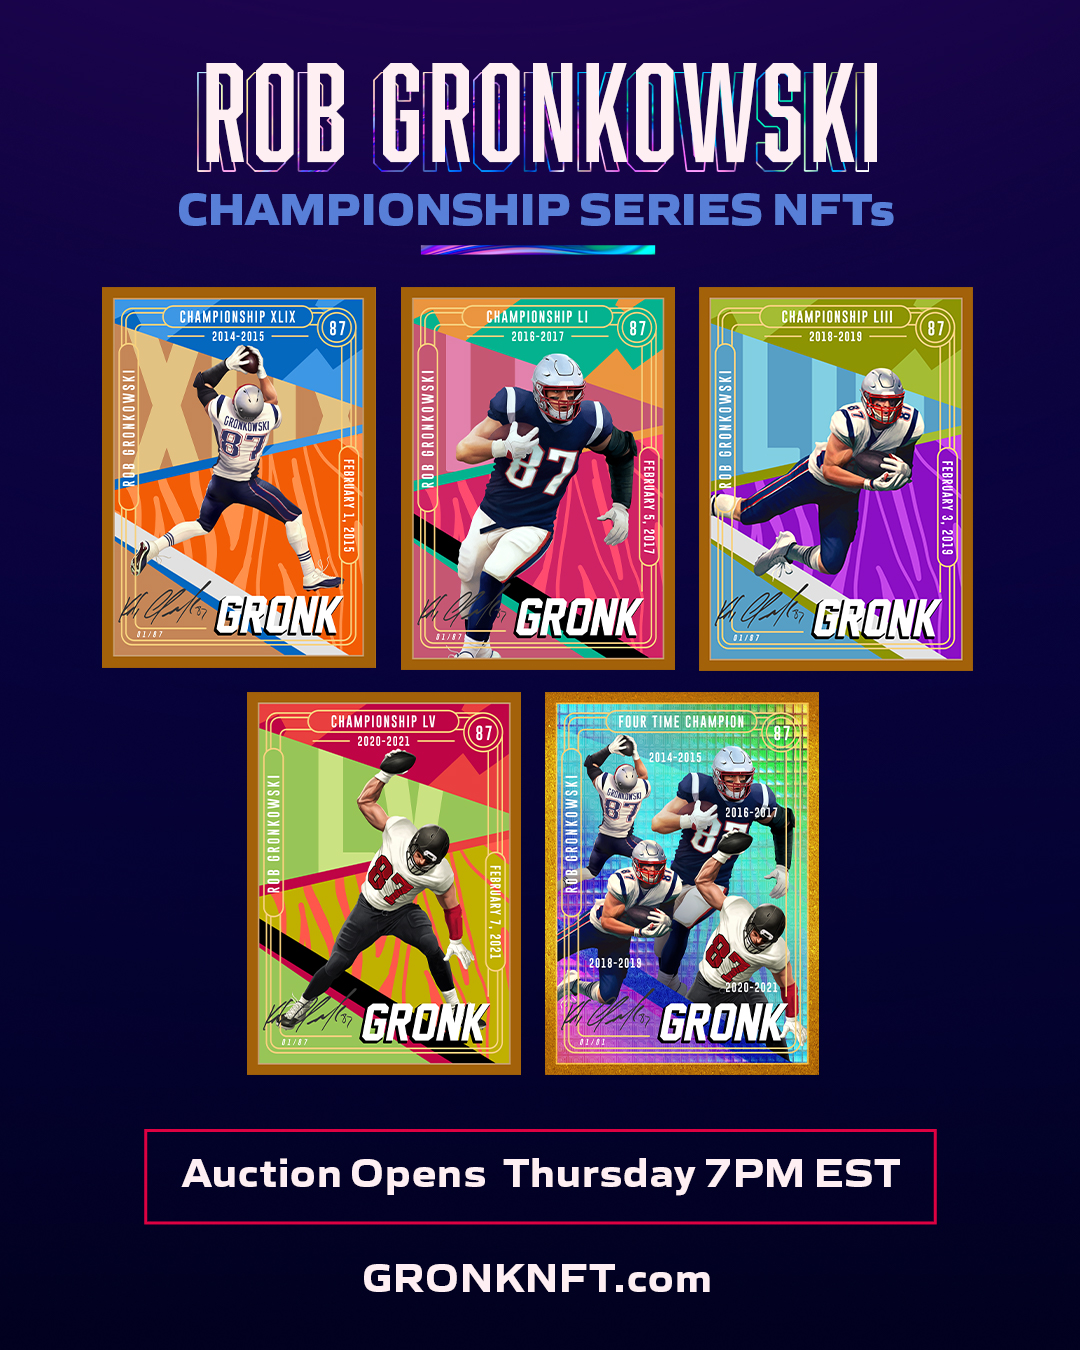 Rob Gronkowski's NFT collection.